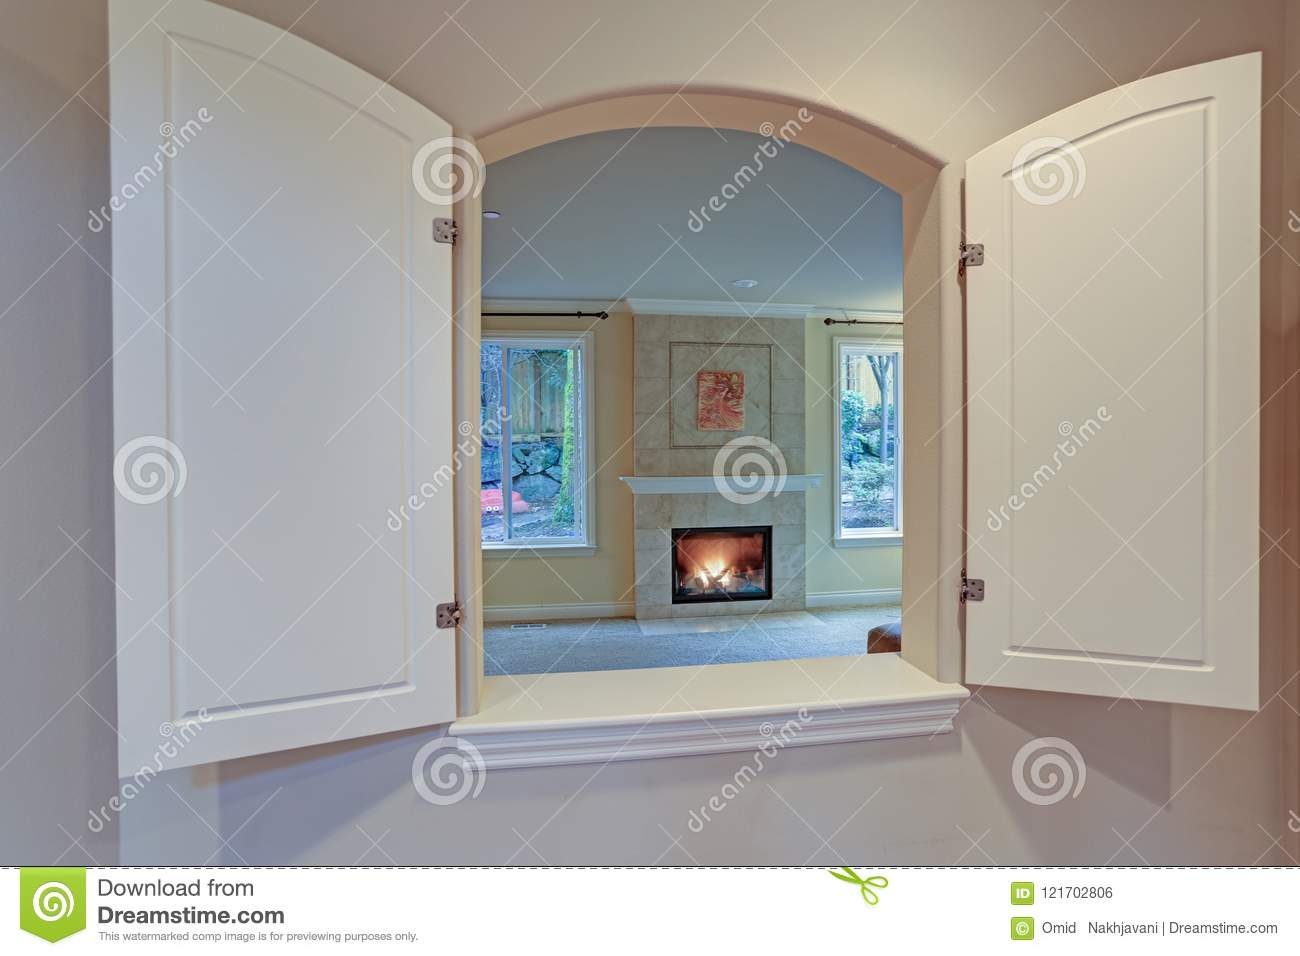 Kitchen pass through window opens to a living room